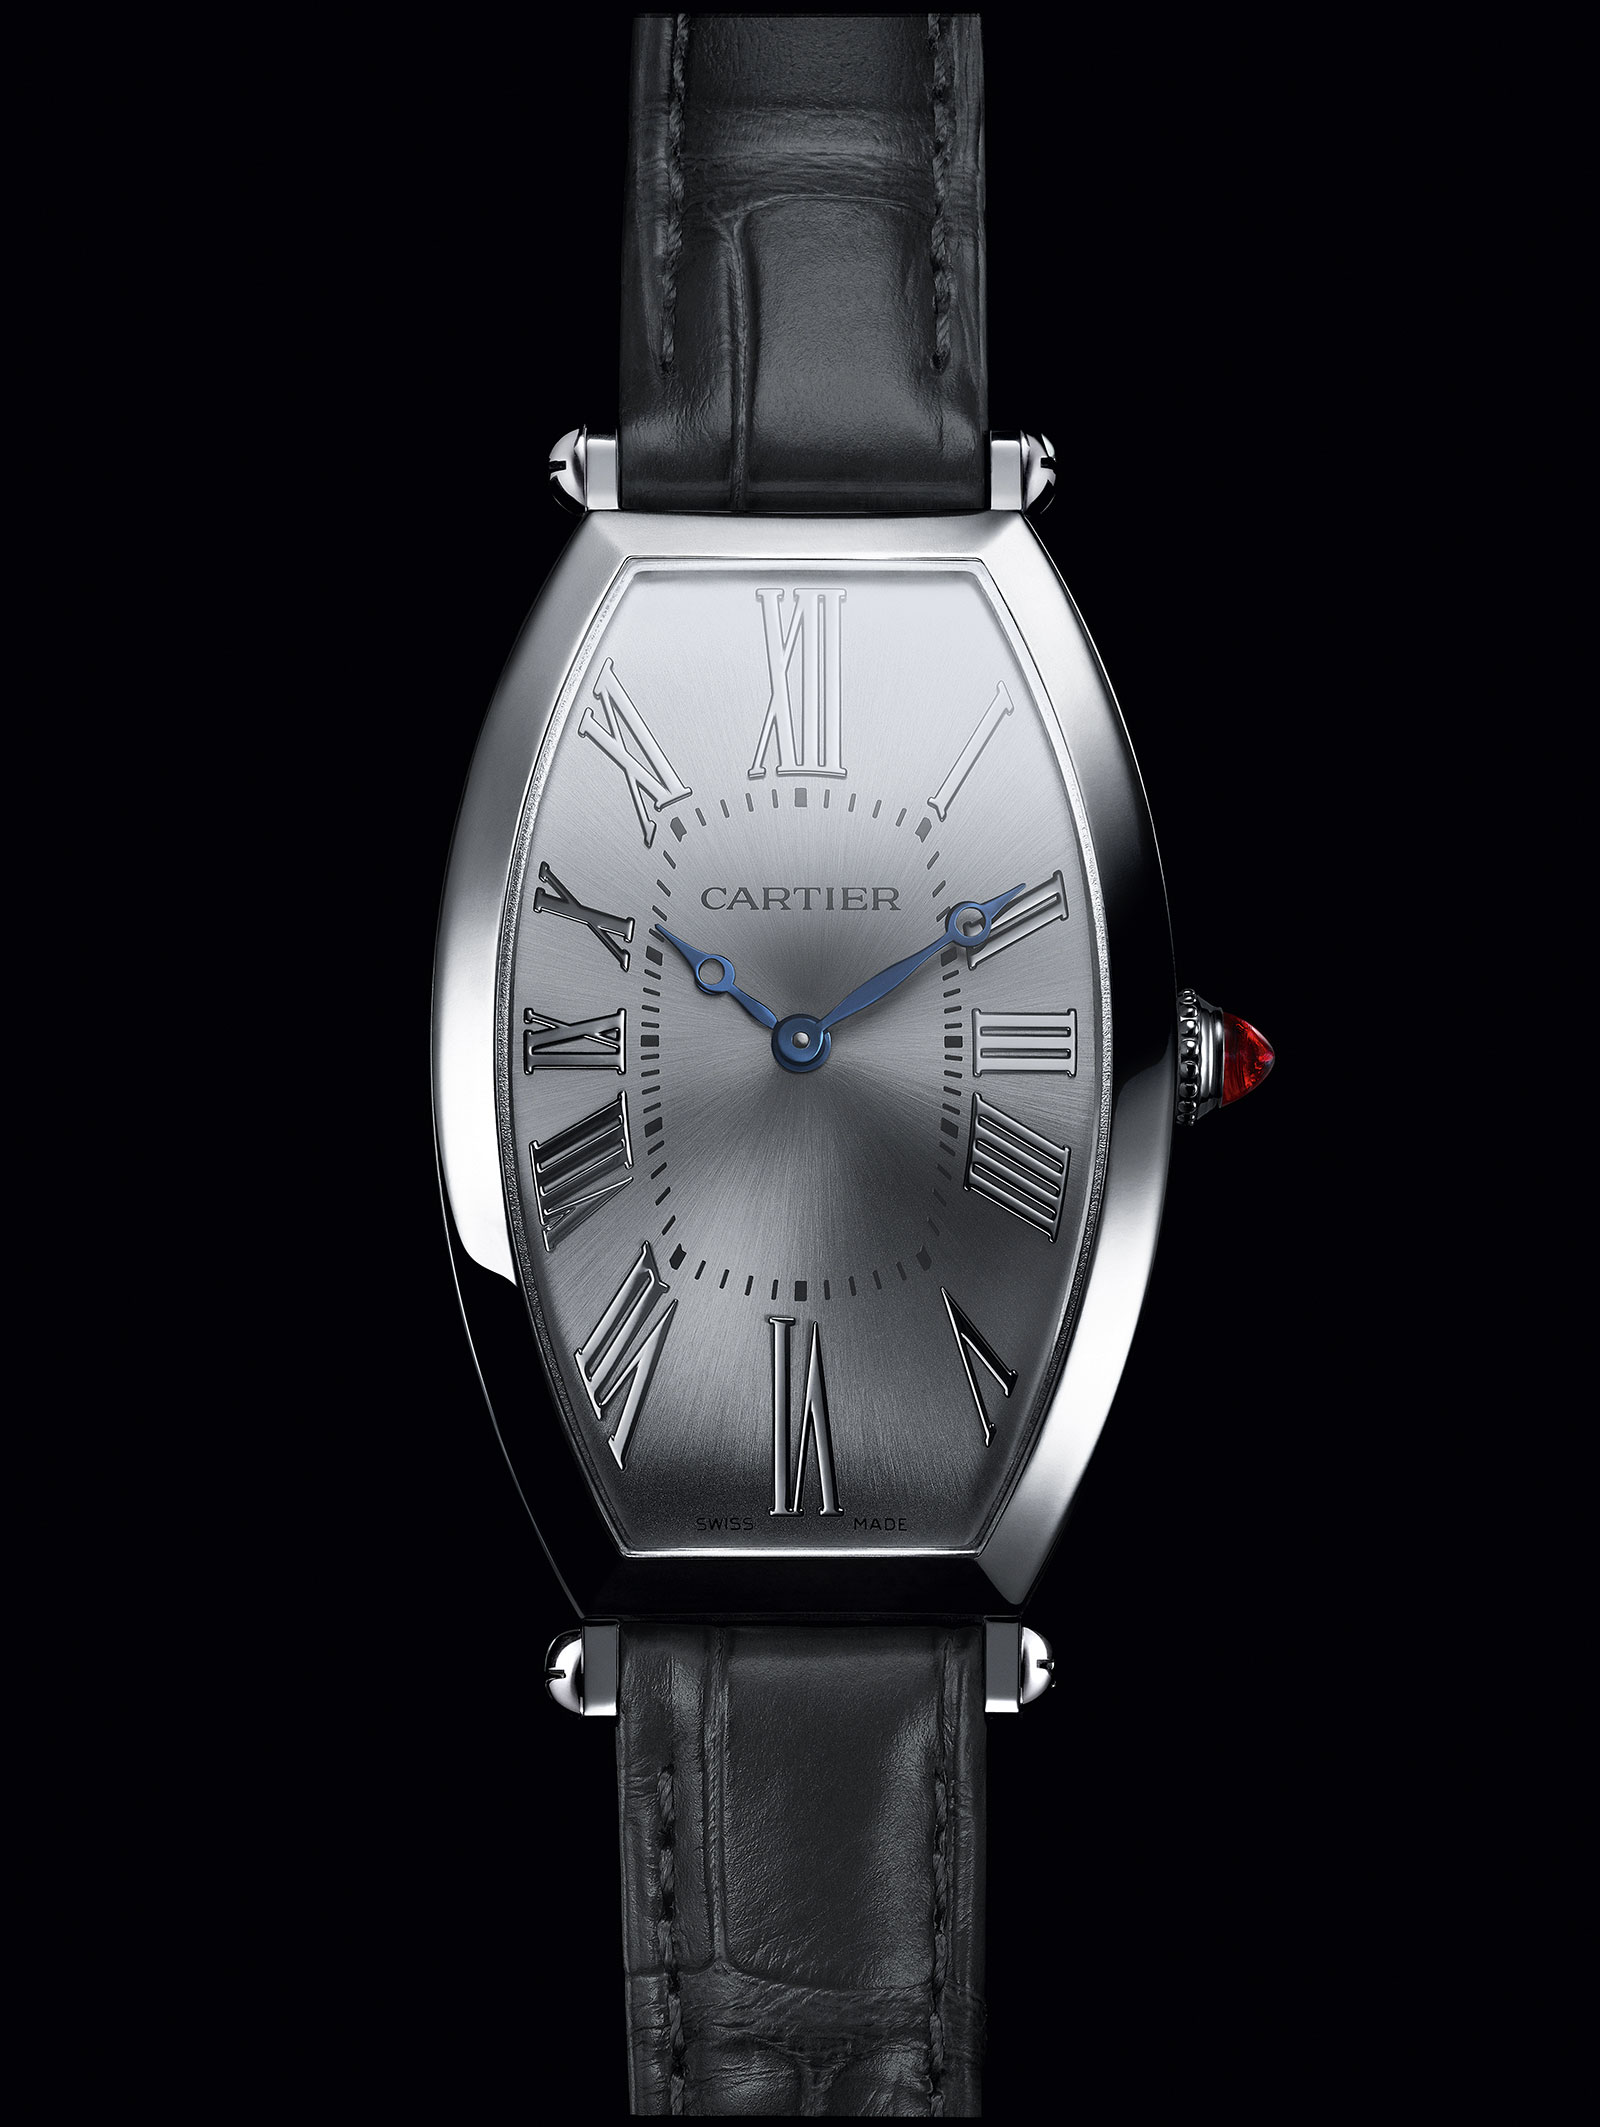 Cartier Privé Tonneau Large Model platinum